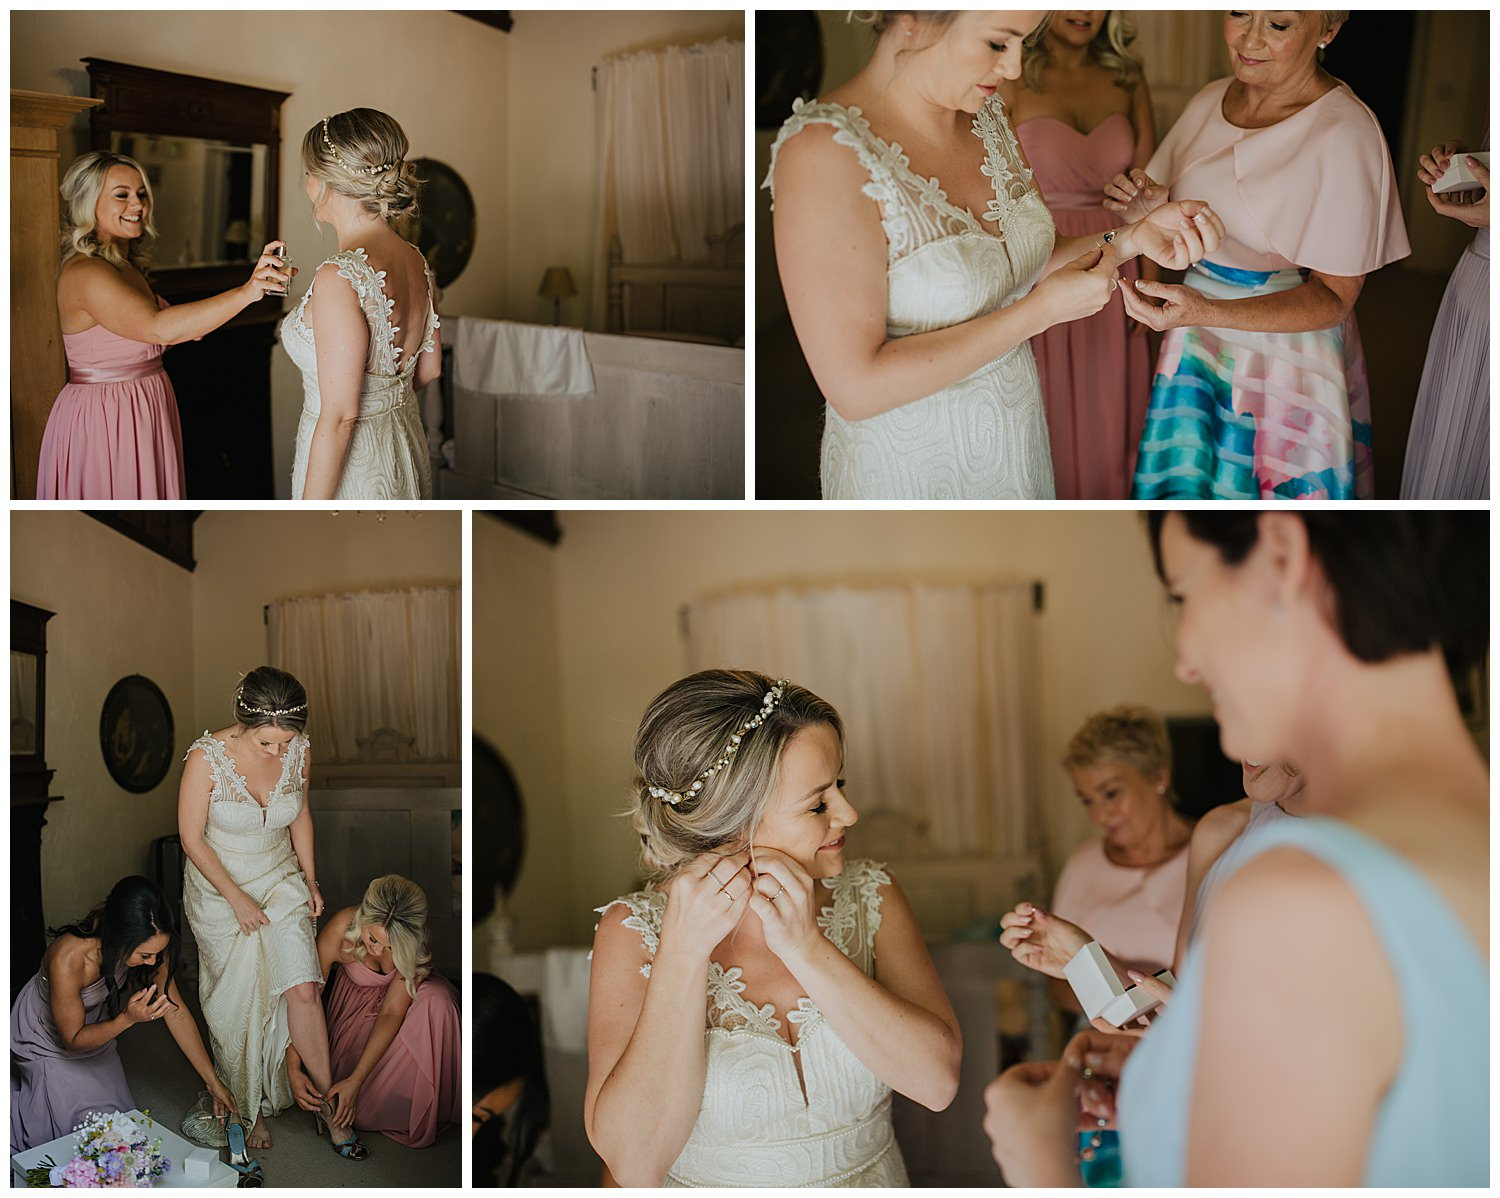 j&r_ballybeg_house_wedding_photographer_livia_figueiredo_172.jpg